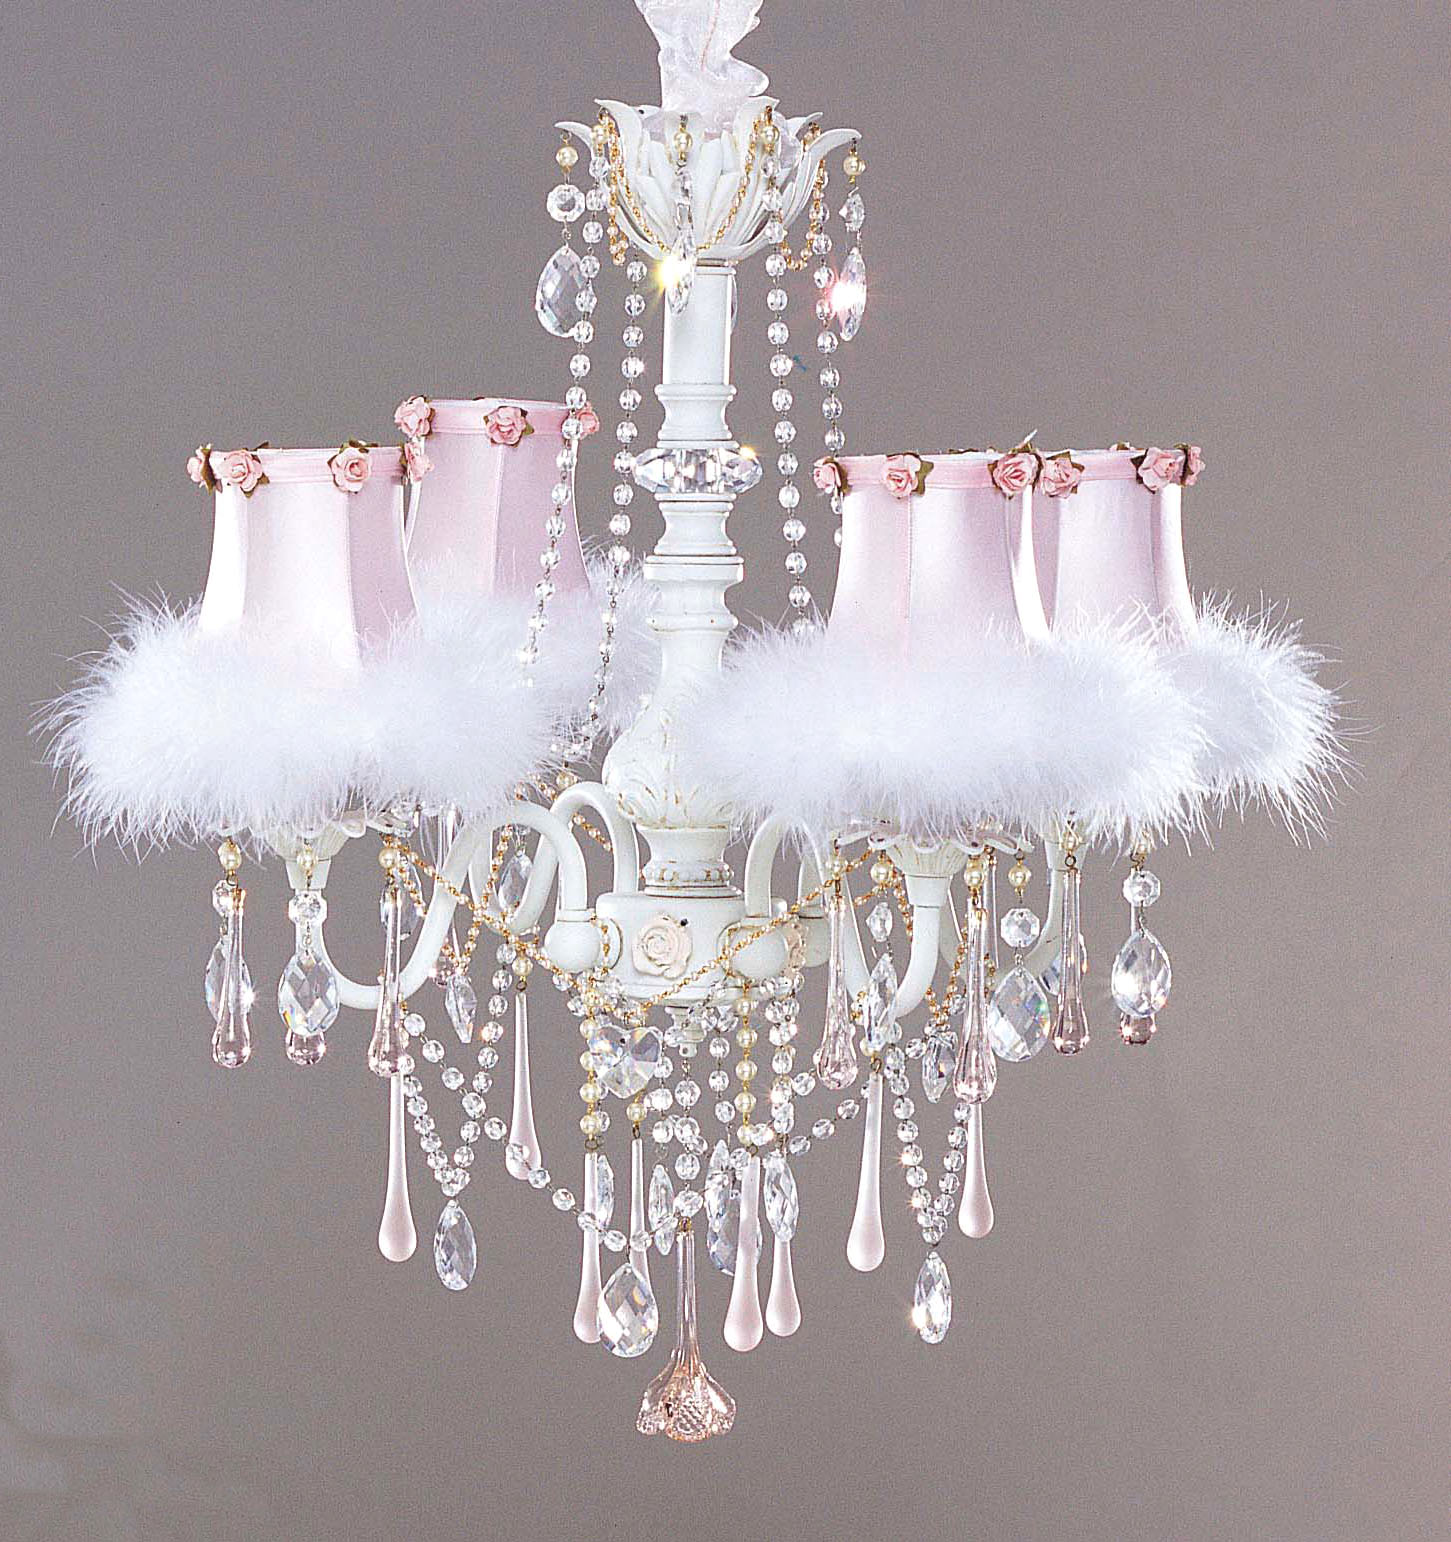 Magnificent Shabby Chic Room Chandelier for Girls 1451 x 1542 · 403 kB · jpeg